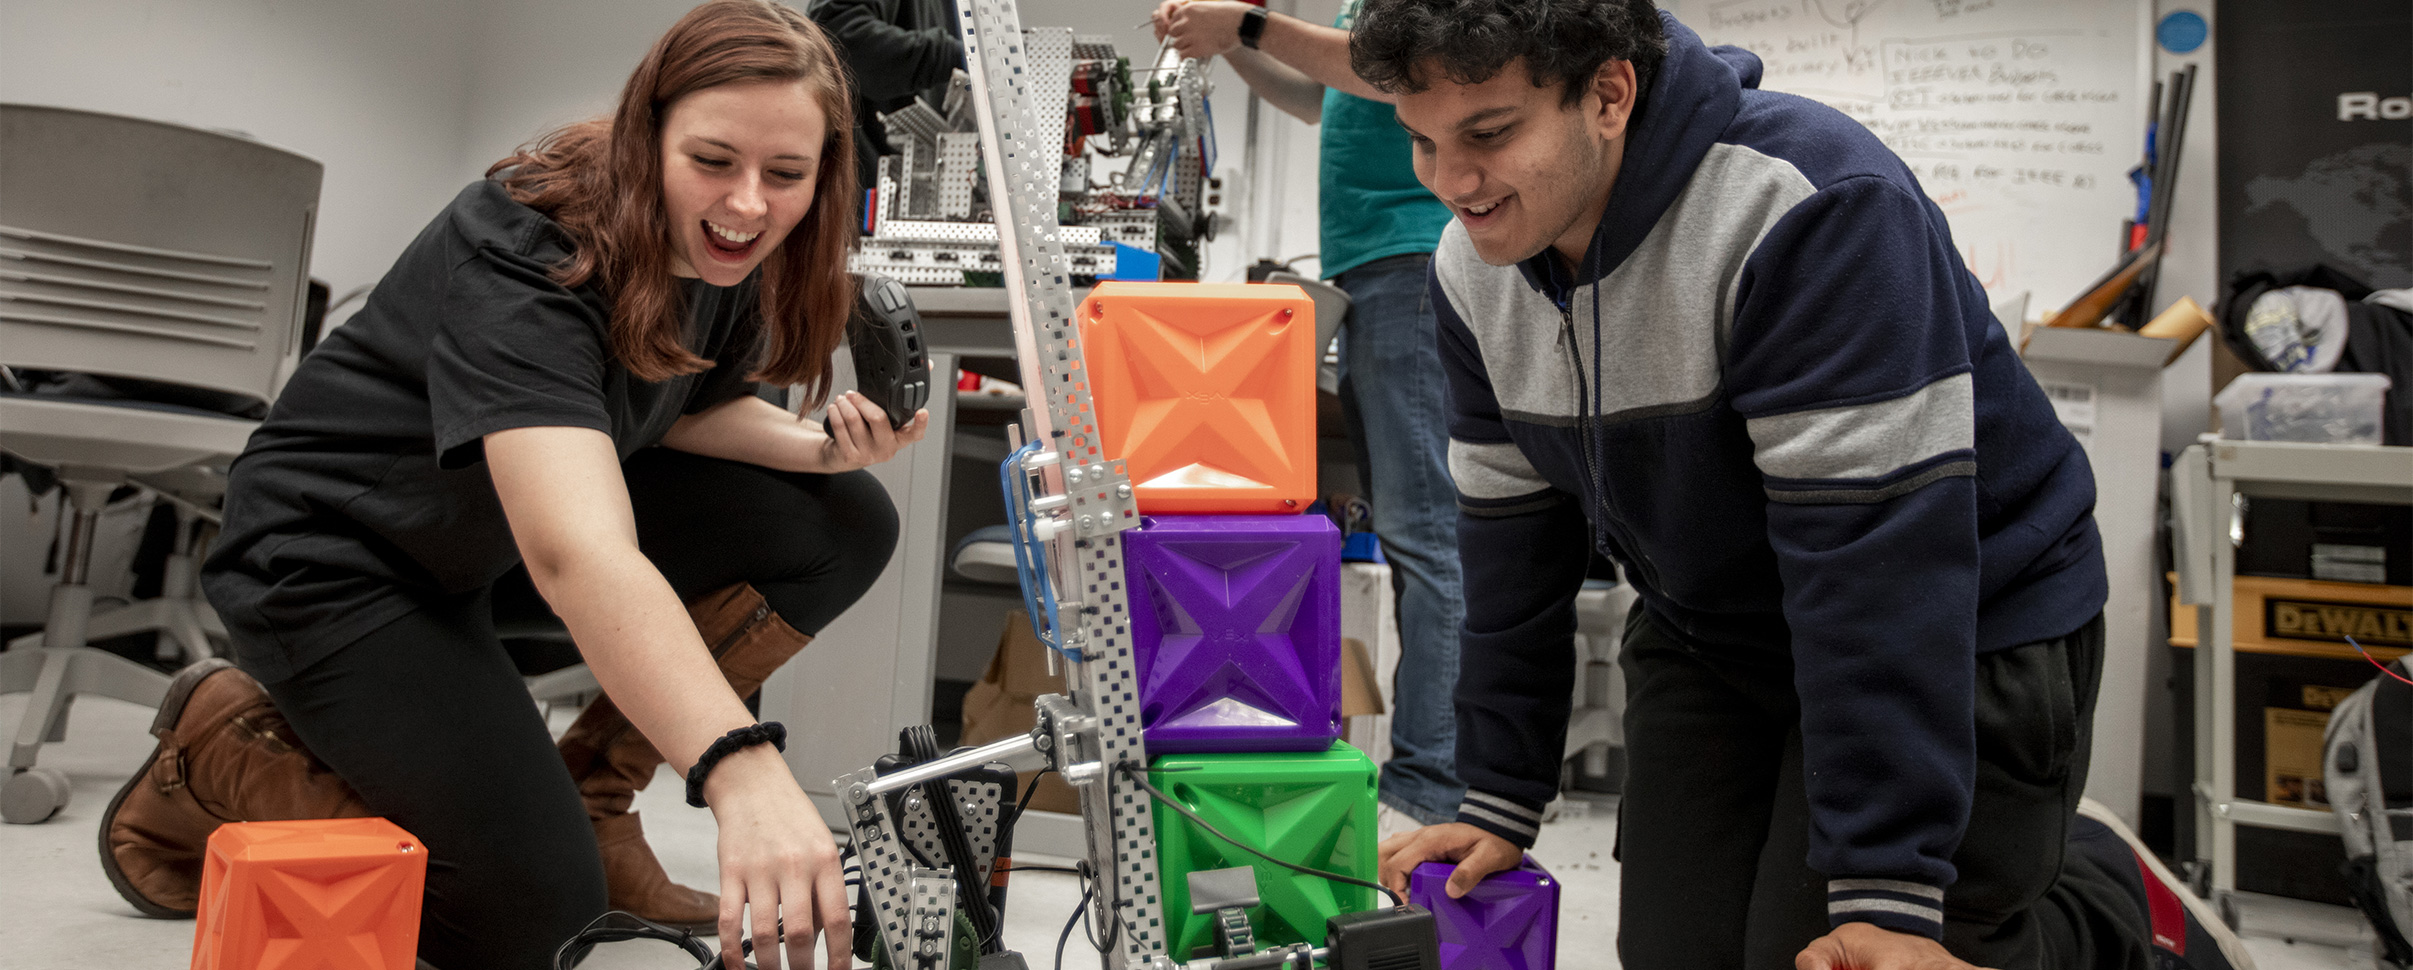 Mechanical engineering students working on project with colorful boxes